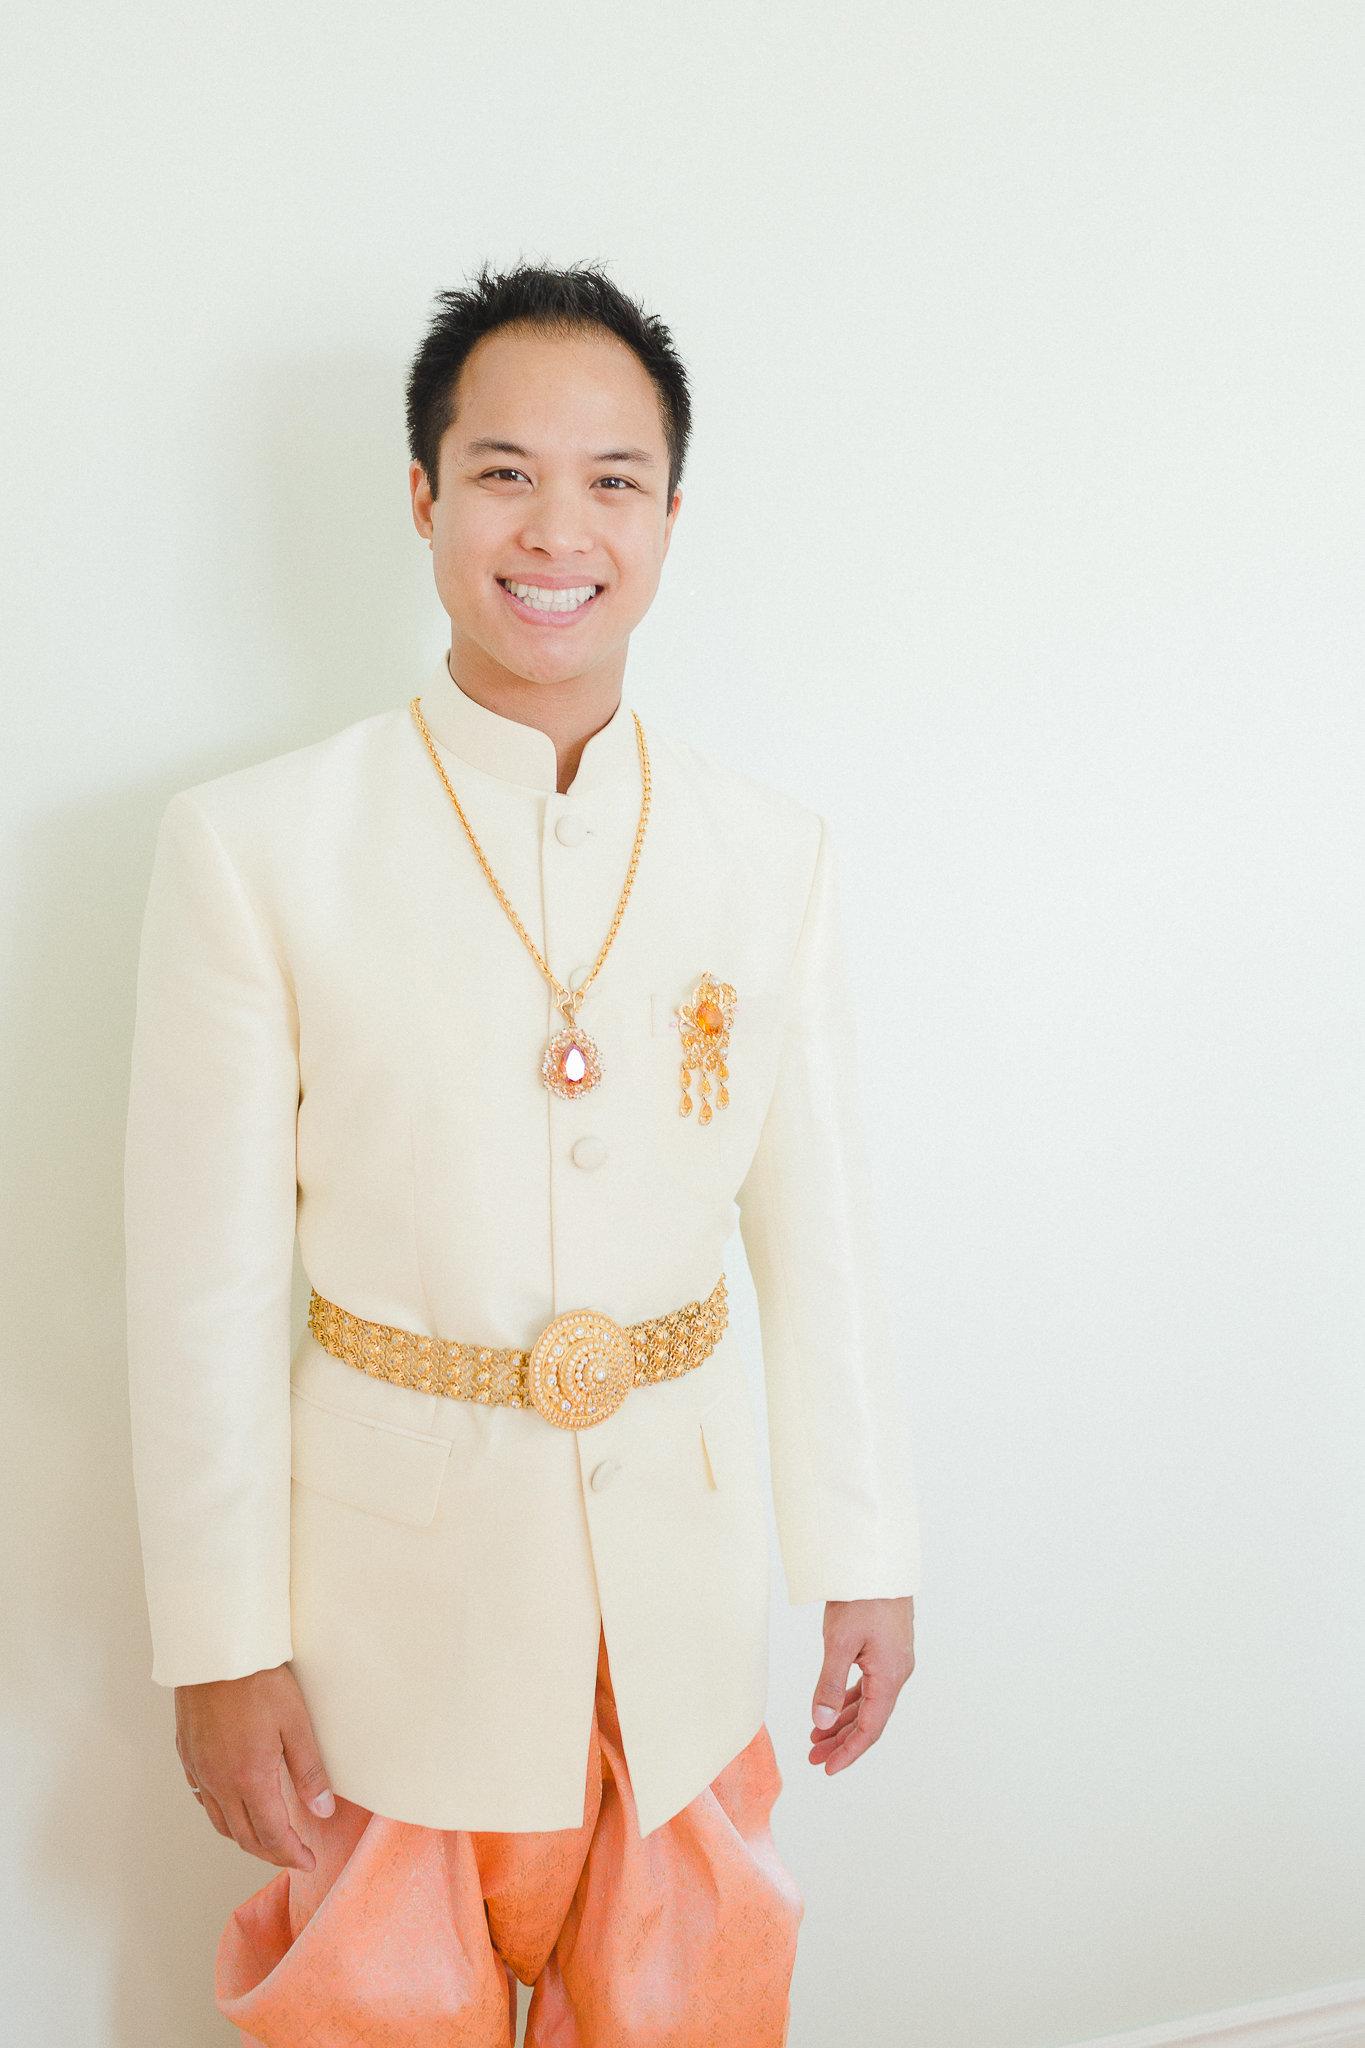 photographe-montreal-mariage-culturel-traditionnel-cambodgien-lisa-renault-photographie-traditional-cultural-cambodian-wedding-33